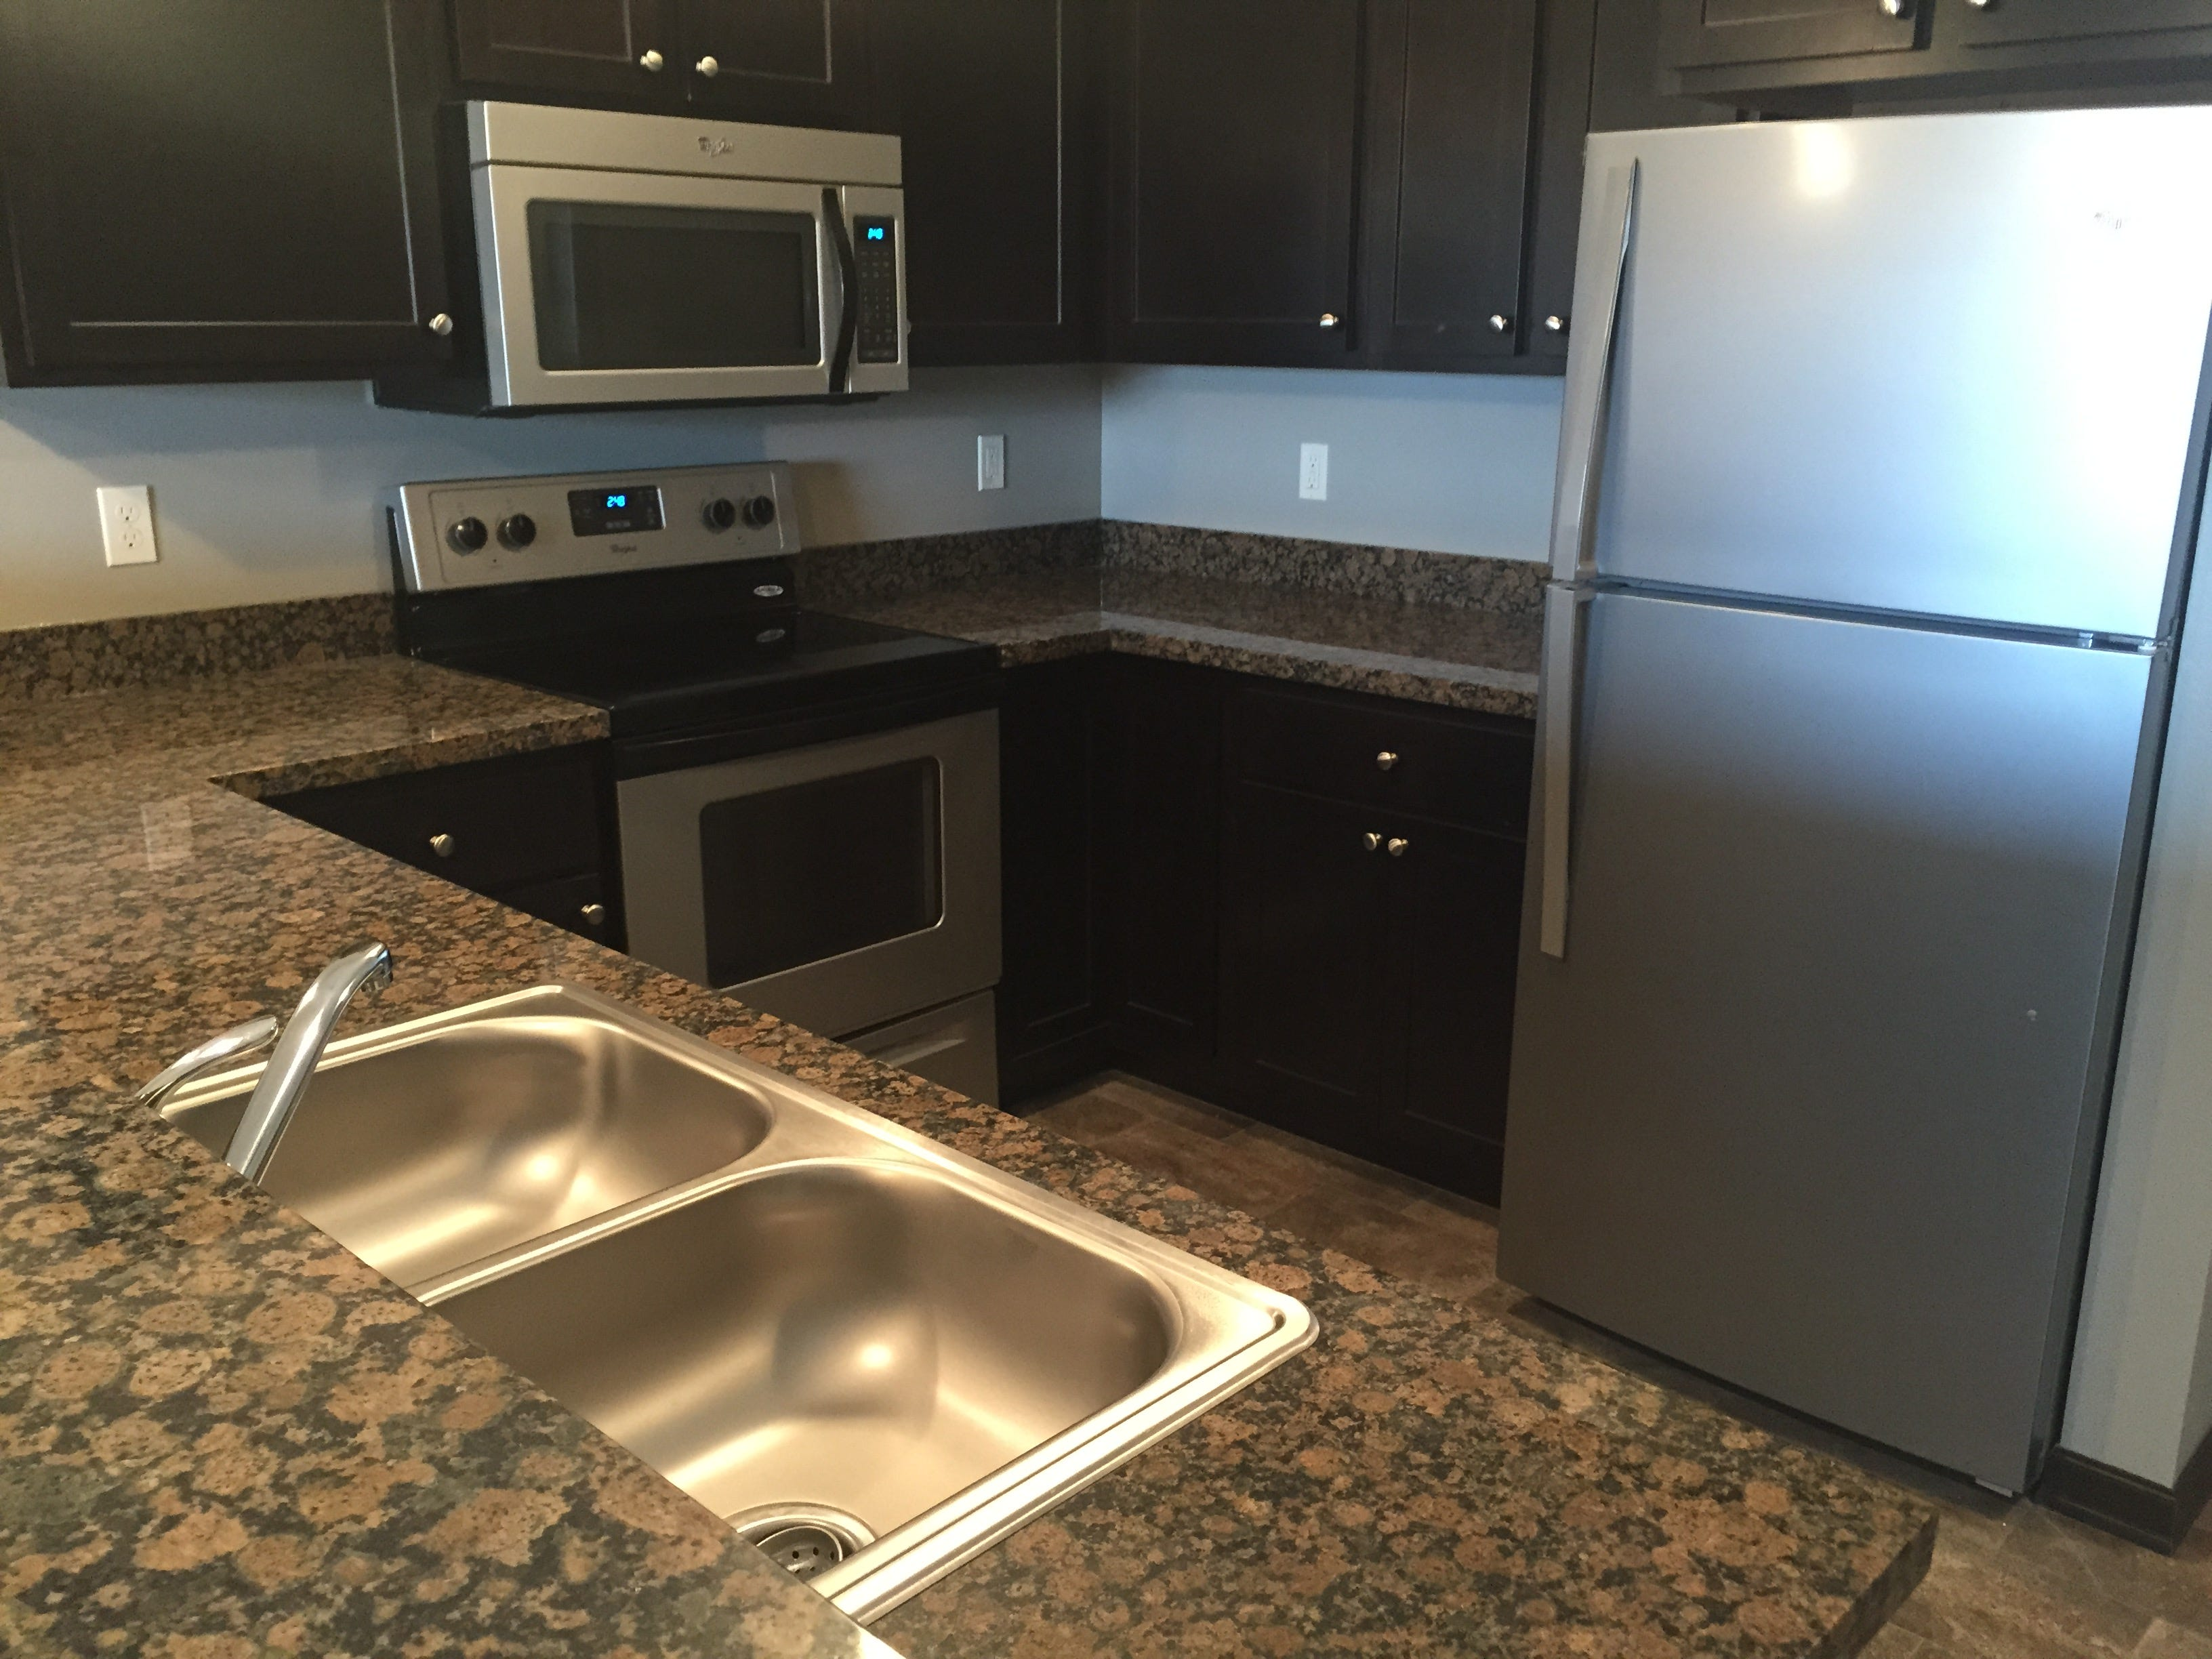 Genial All Apartments In The Village At Three Fountains Have Granite Countertops.  (Photo: Jodi Schwan / Sioux Falls Business Journal)